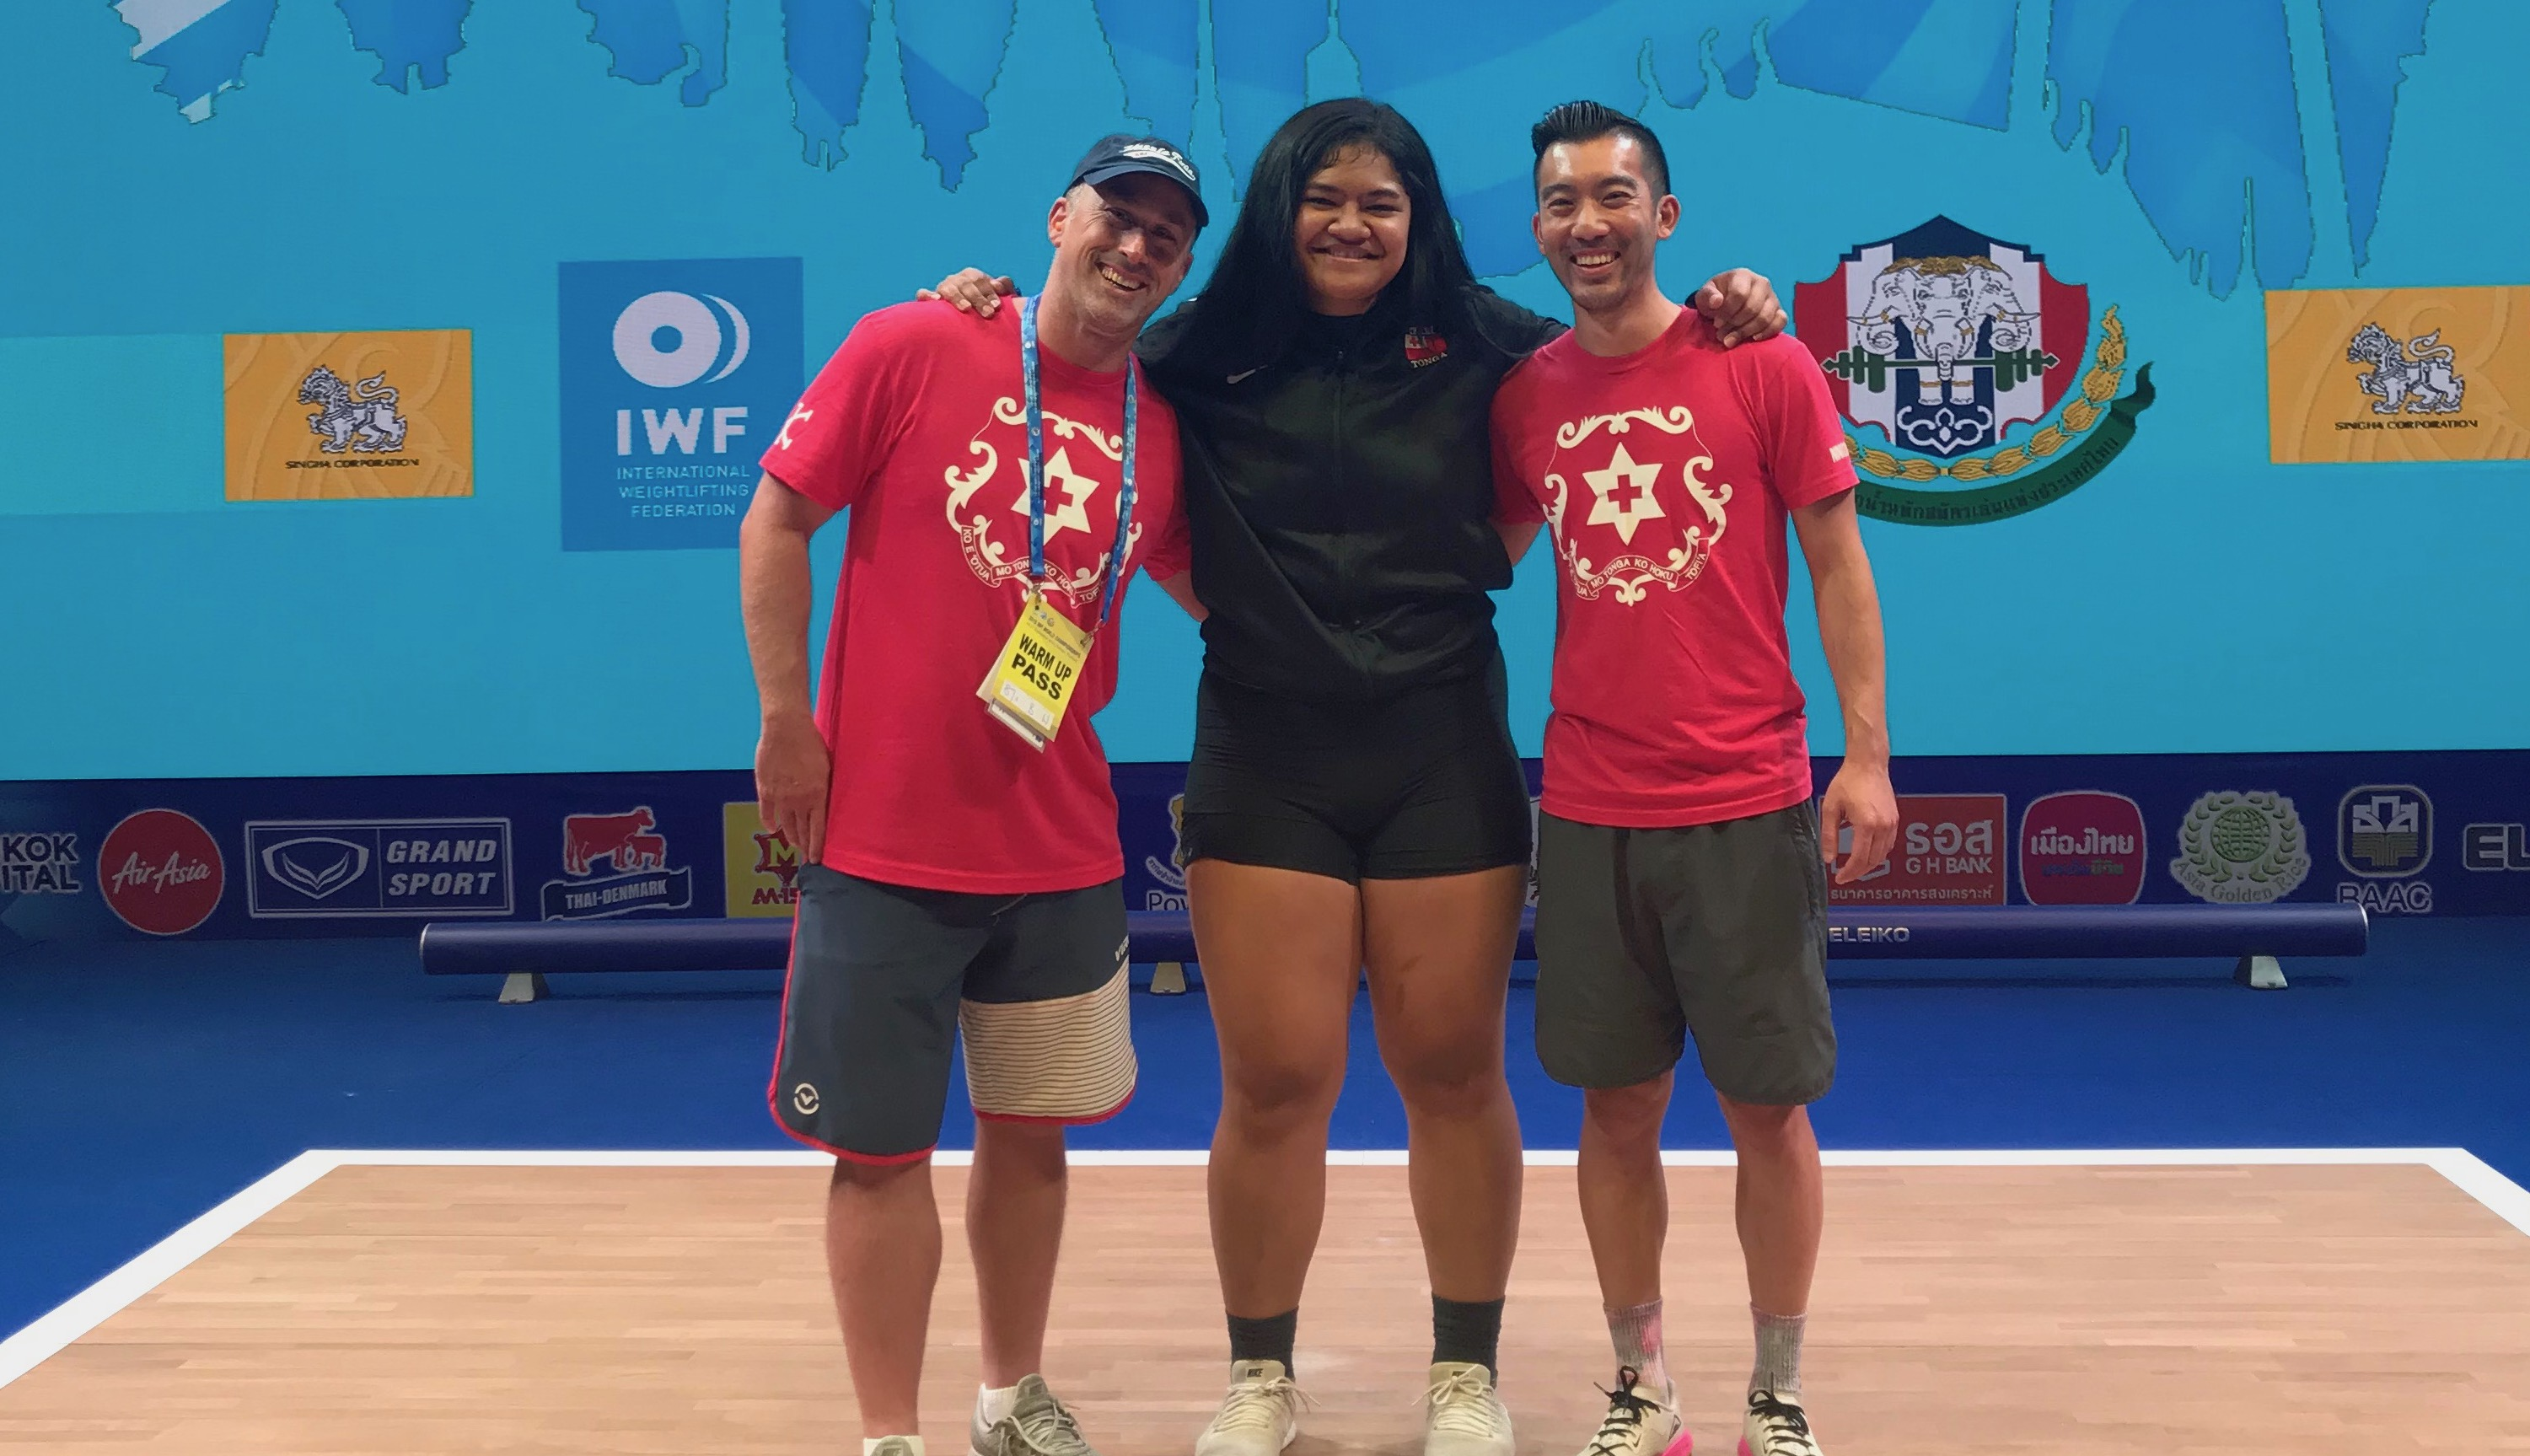 Kuinini Manumua, an ALHS class of 2018 alumni, makes all lifts at the IWF World Championships!